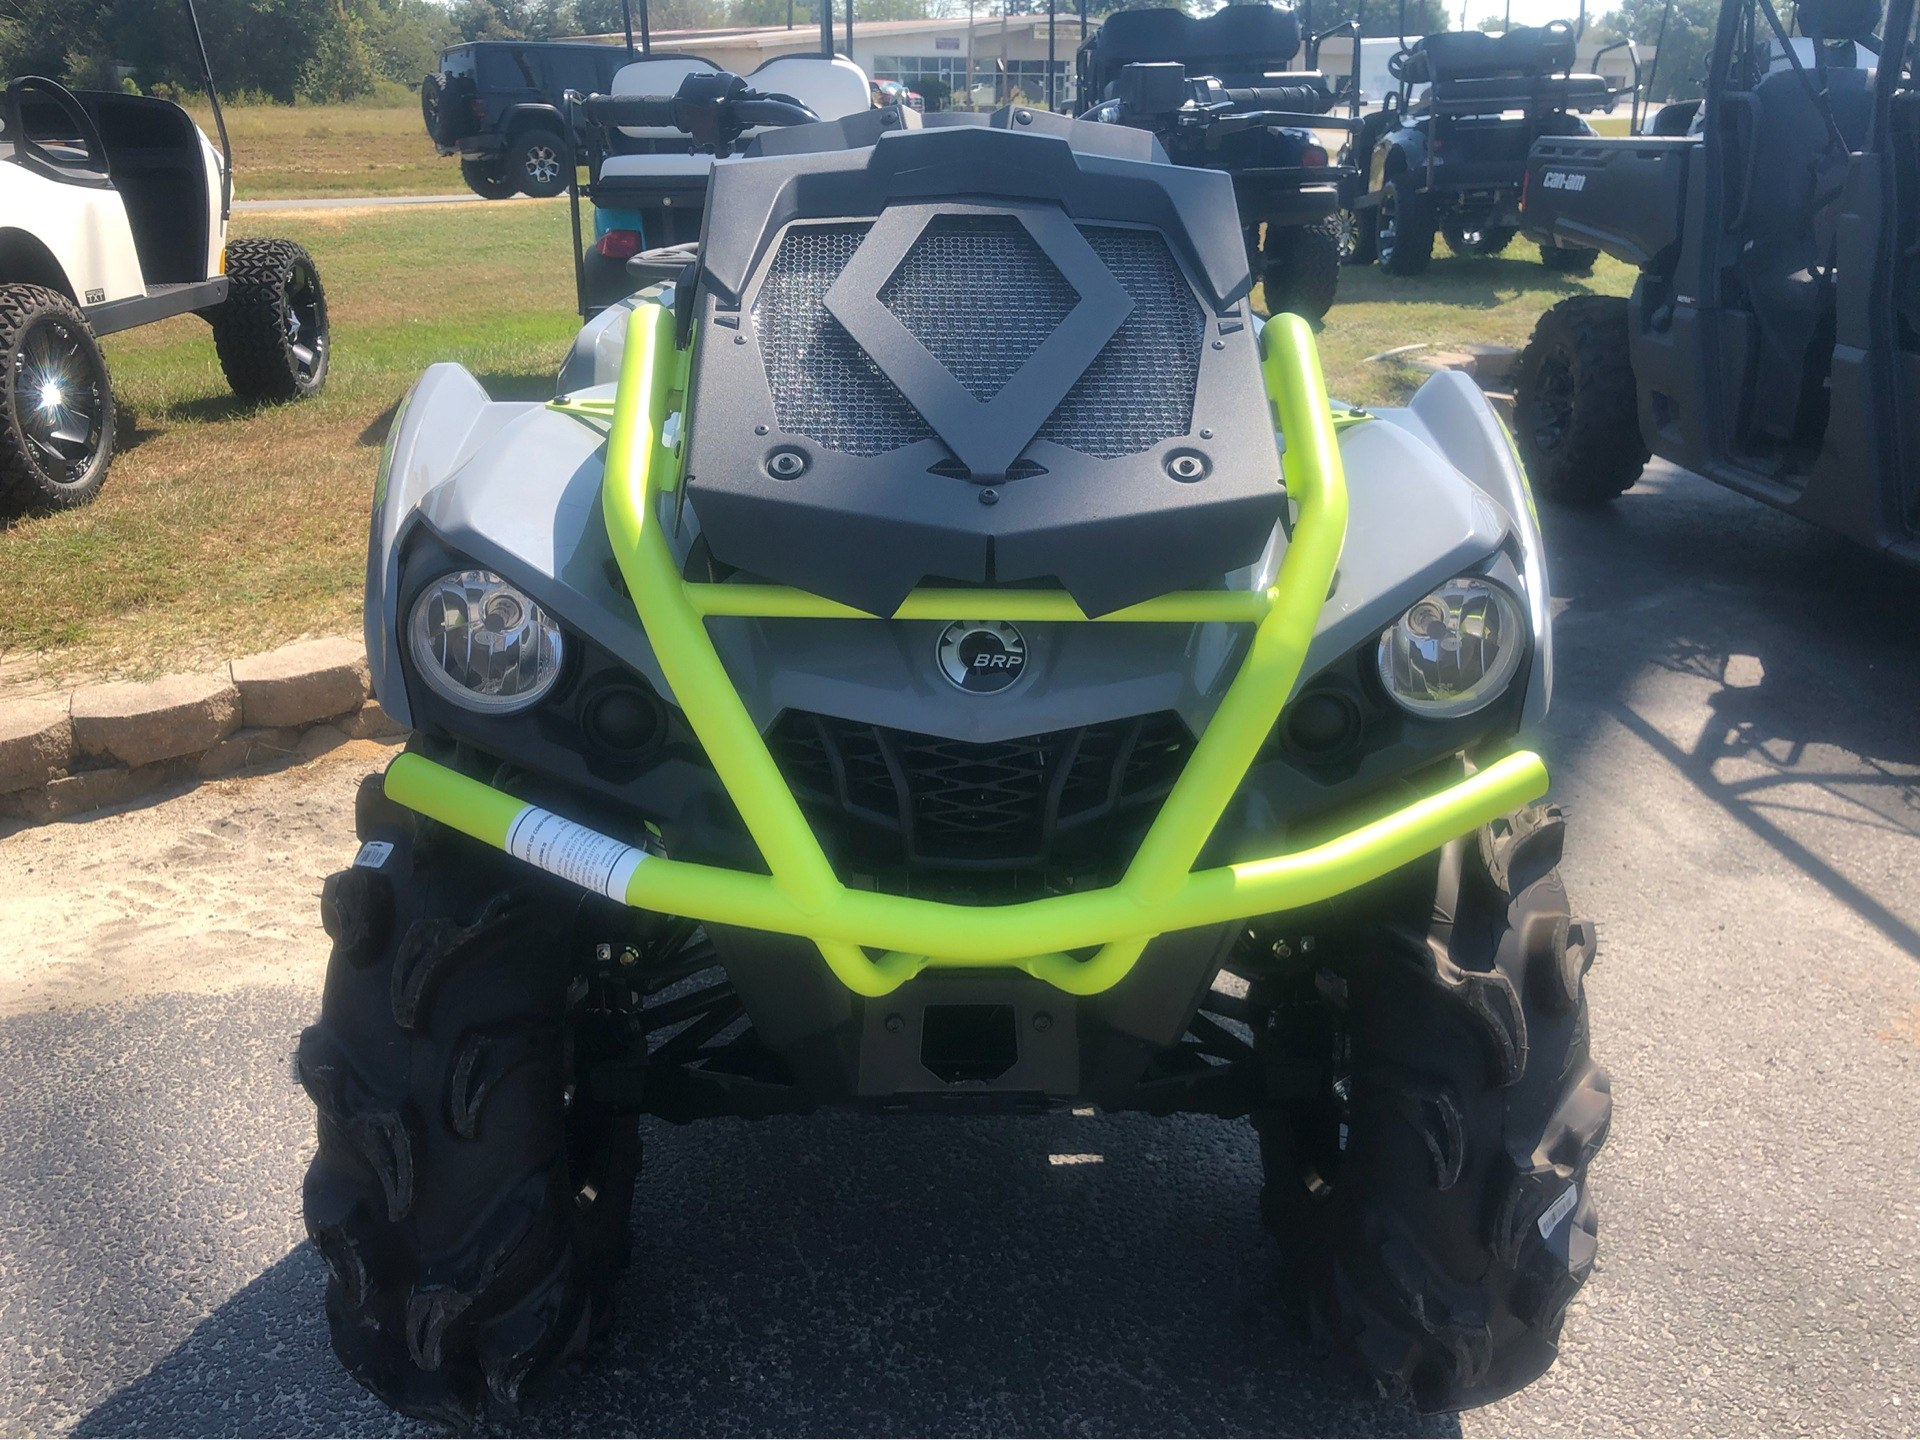 2020 Can-Am Outlander X MR 570 in Douglas, Georgia - Photo 4